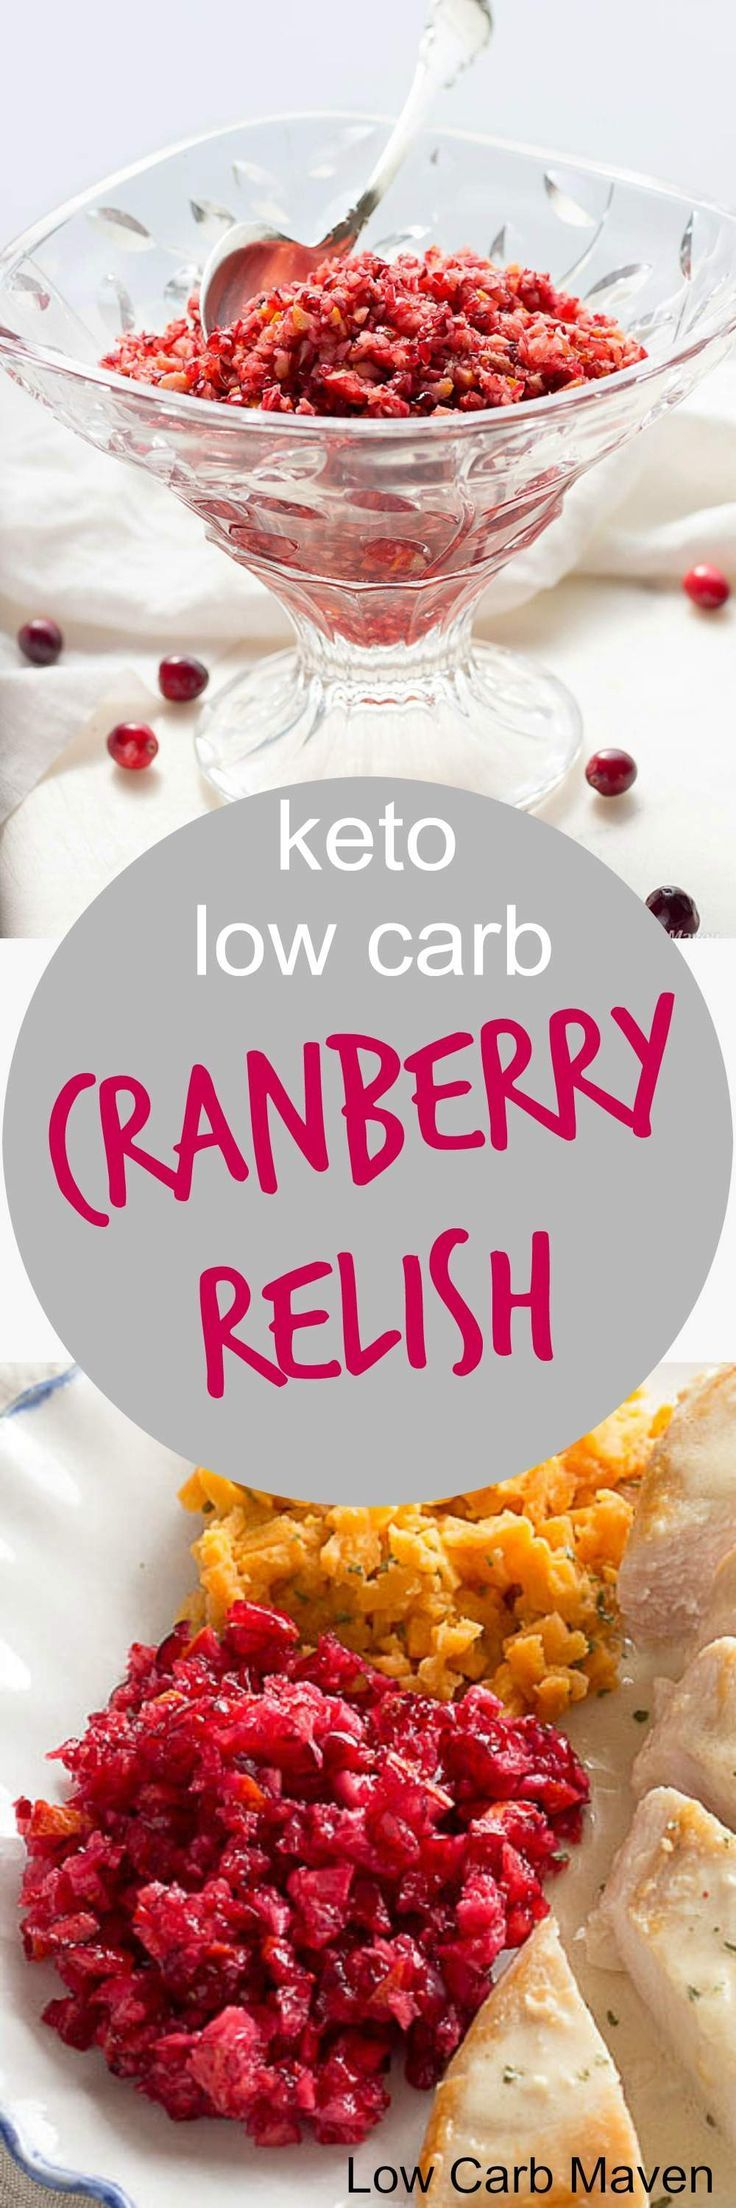 This fresh cranberry relish with orange is low carb for your keto Thansgiving menu.